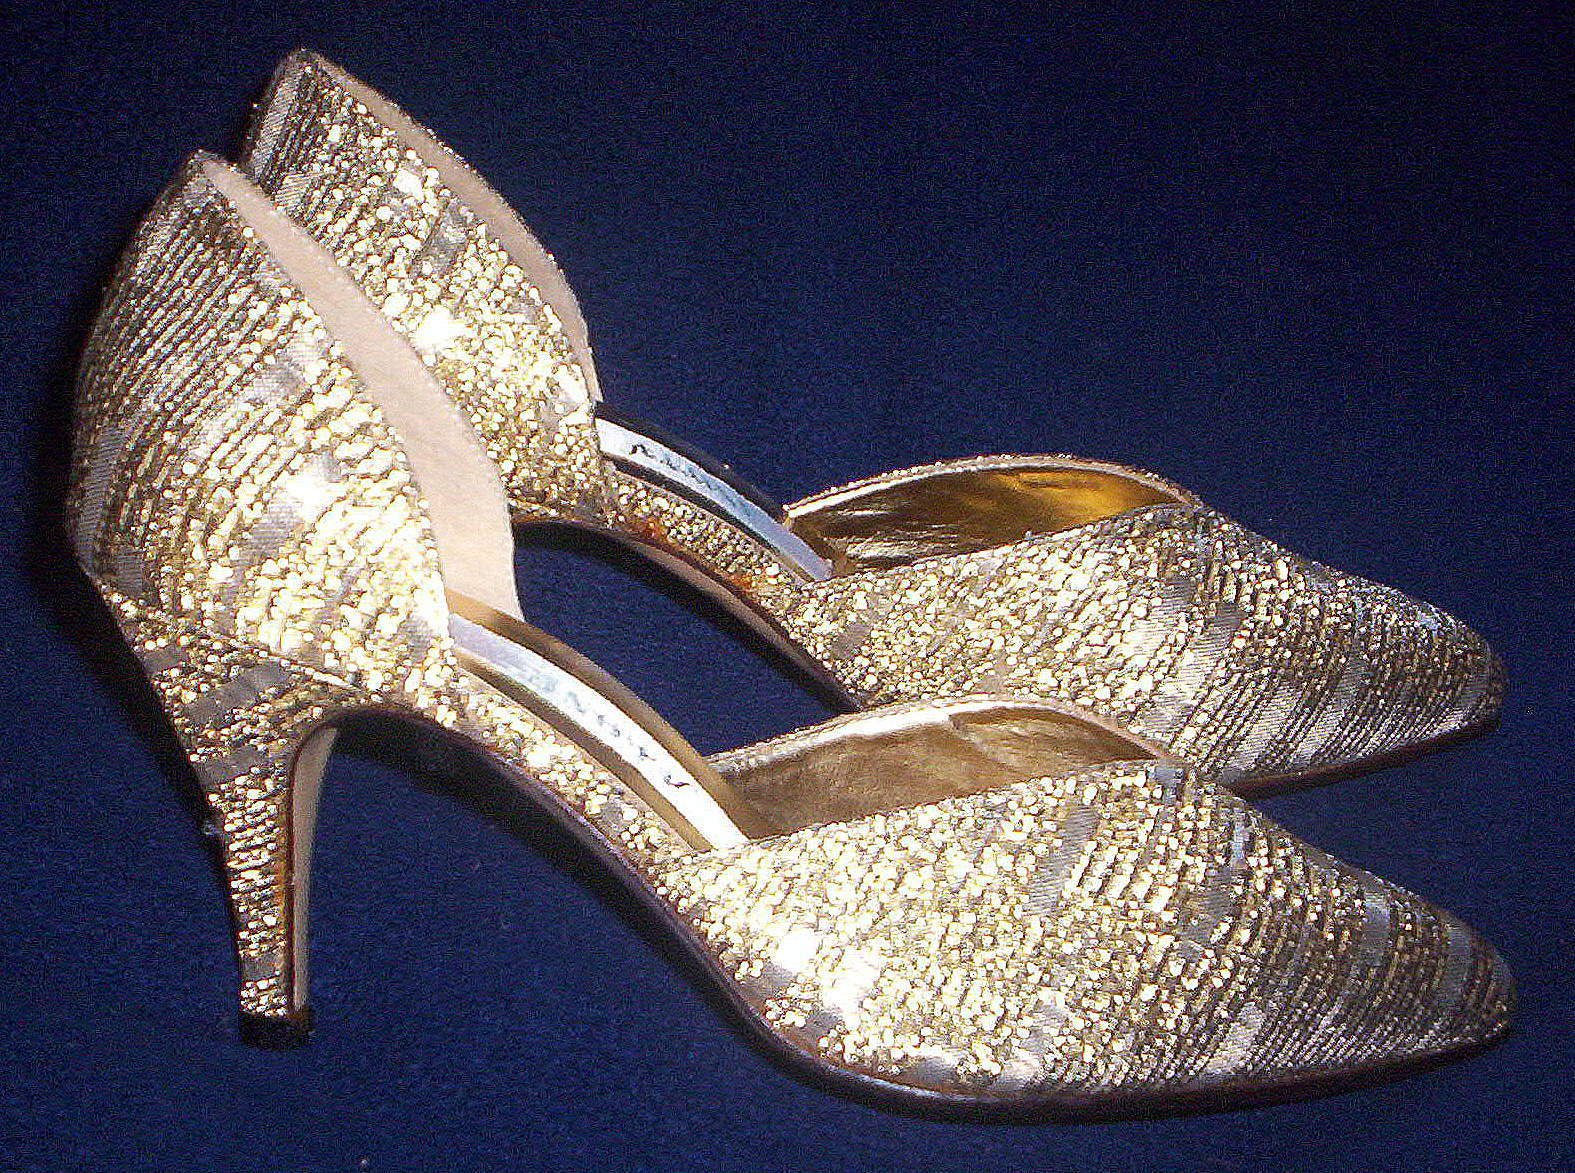 FREDERICO LEONE LEONE LEONE LADIES gold BRIDAL FORMAL PUMPS SHOES size 5 ½  NEW IN THE BOX d58a72